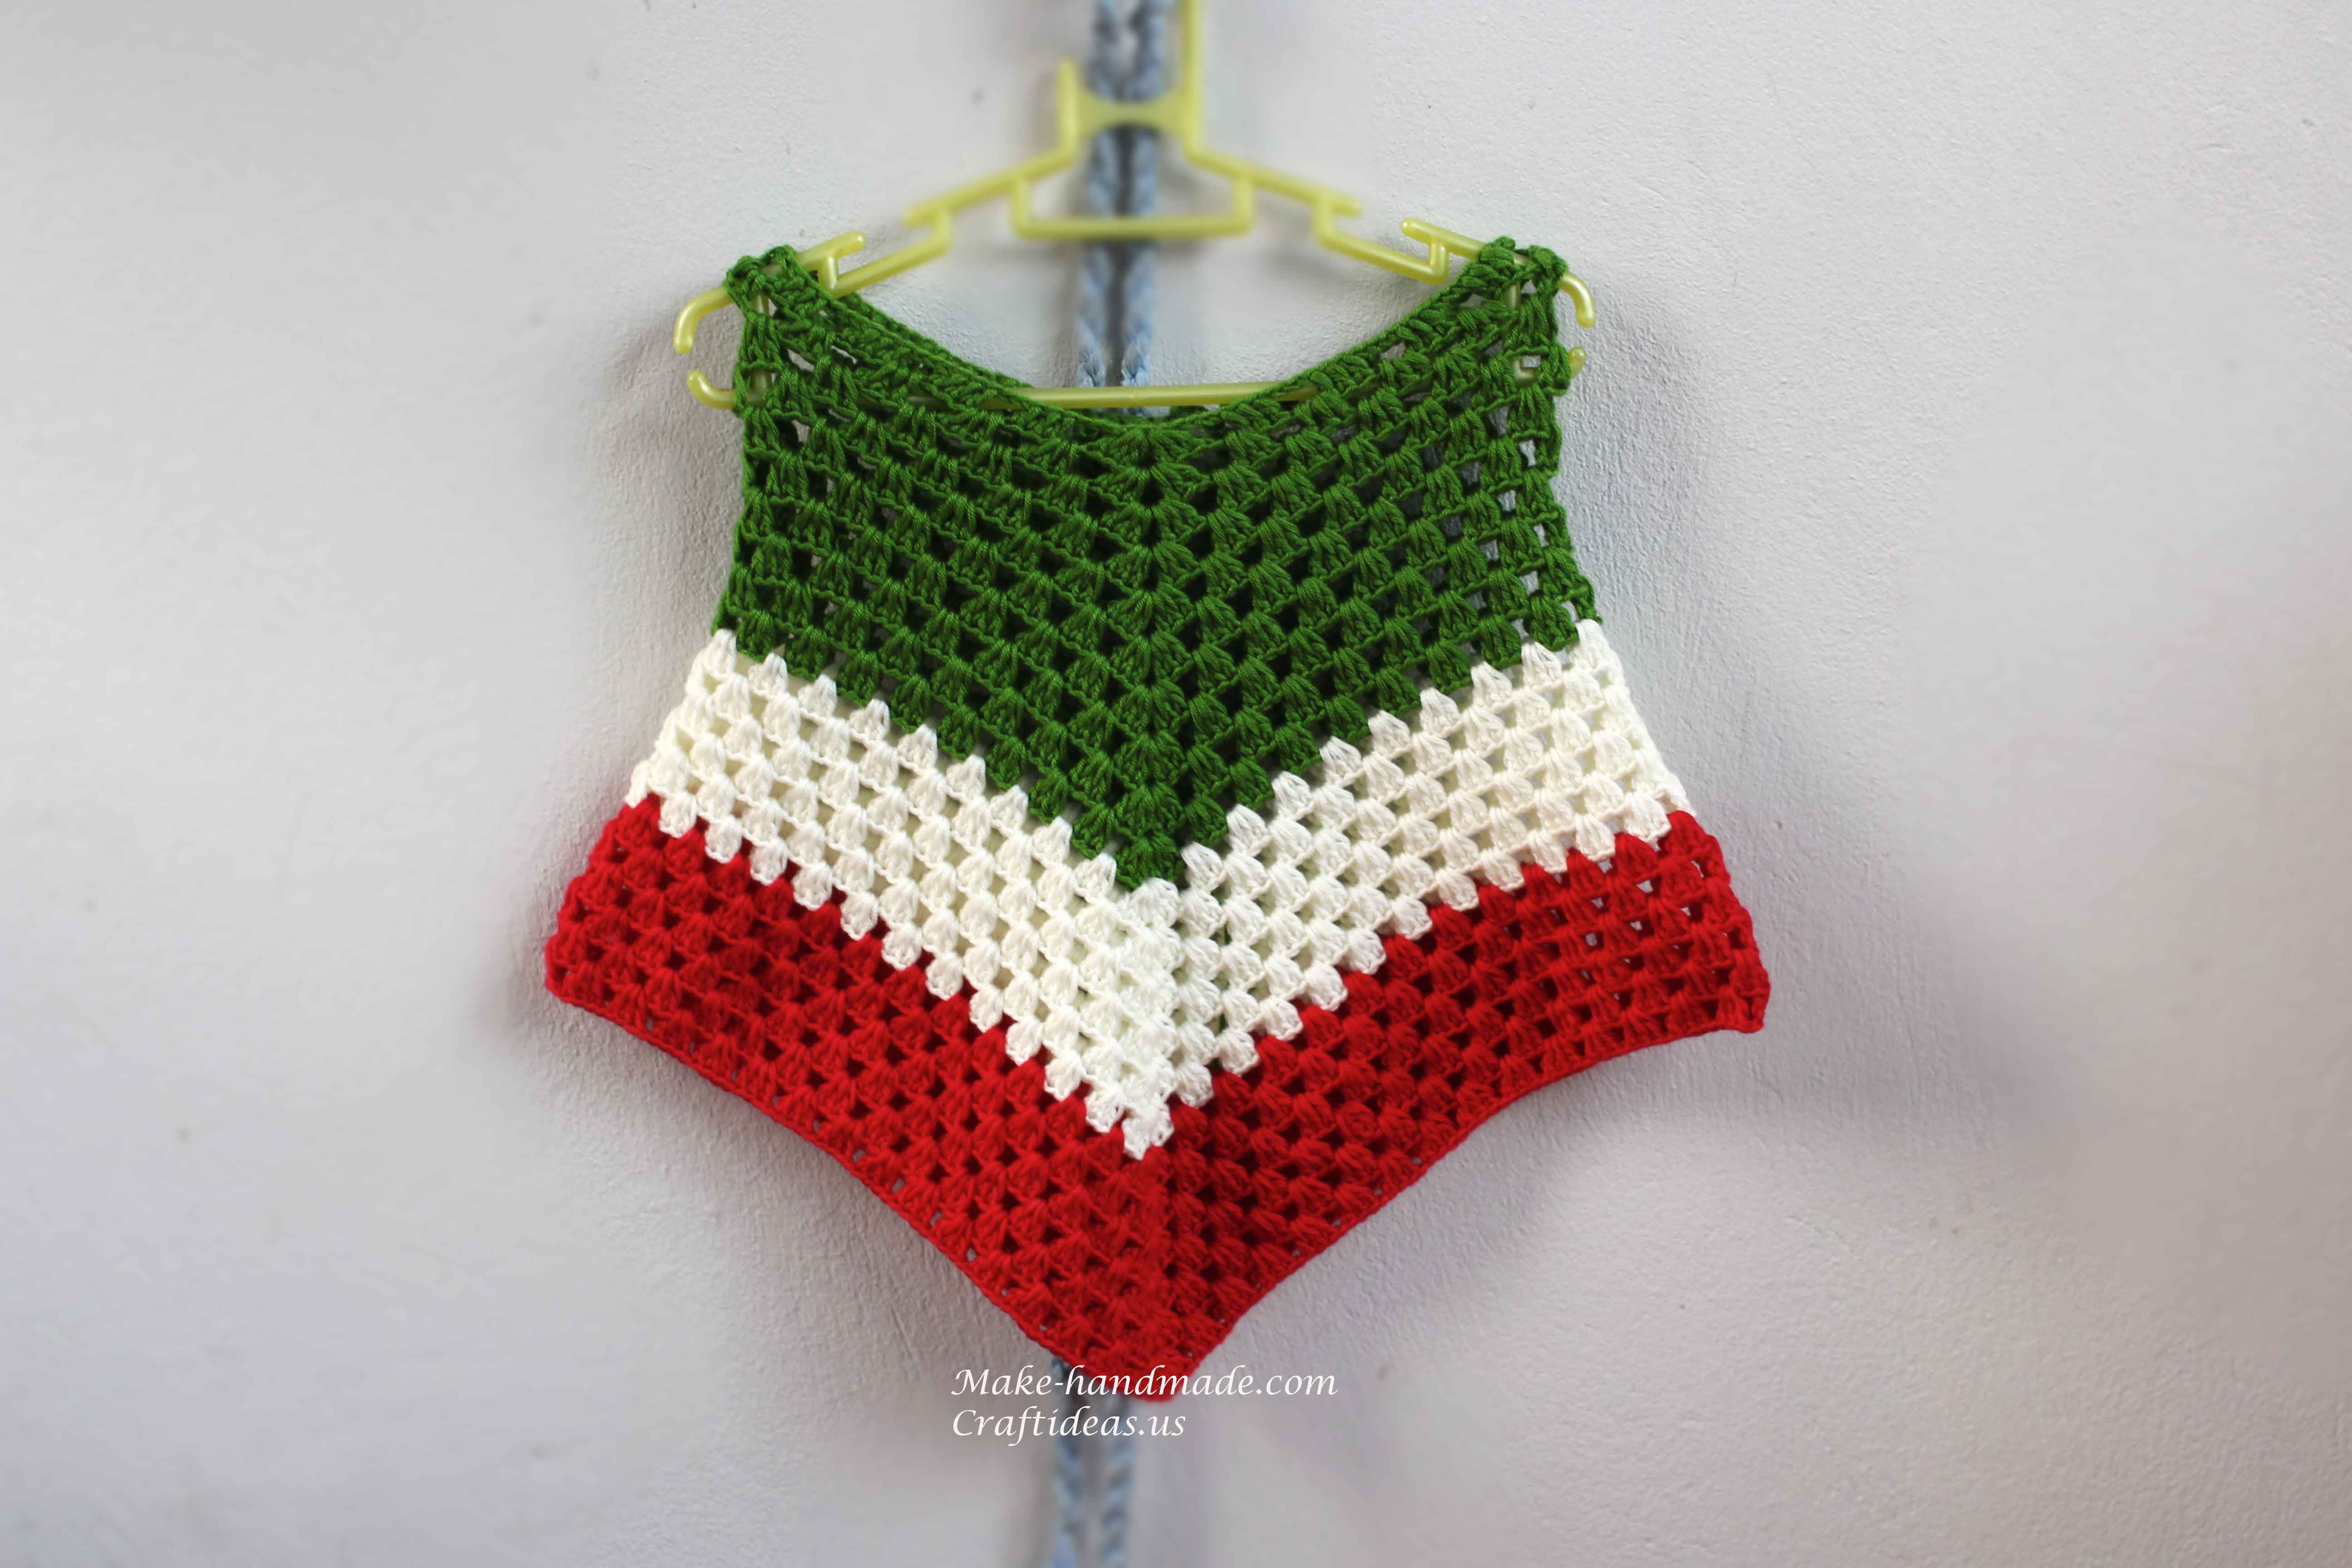 Crocheting Gifts Ideas : Crochet Christmas ideas : Crochet triangle Baby poncho